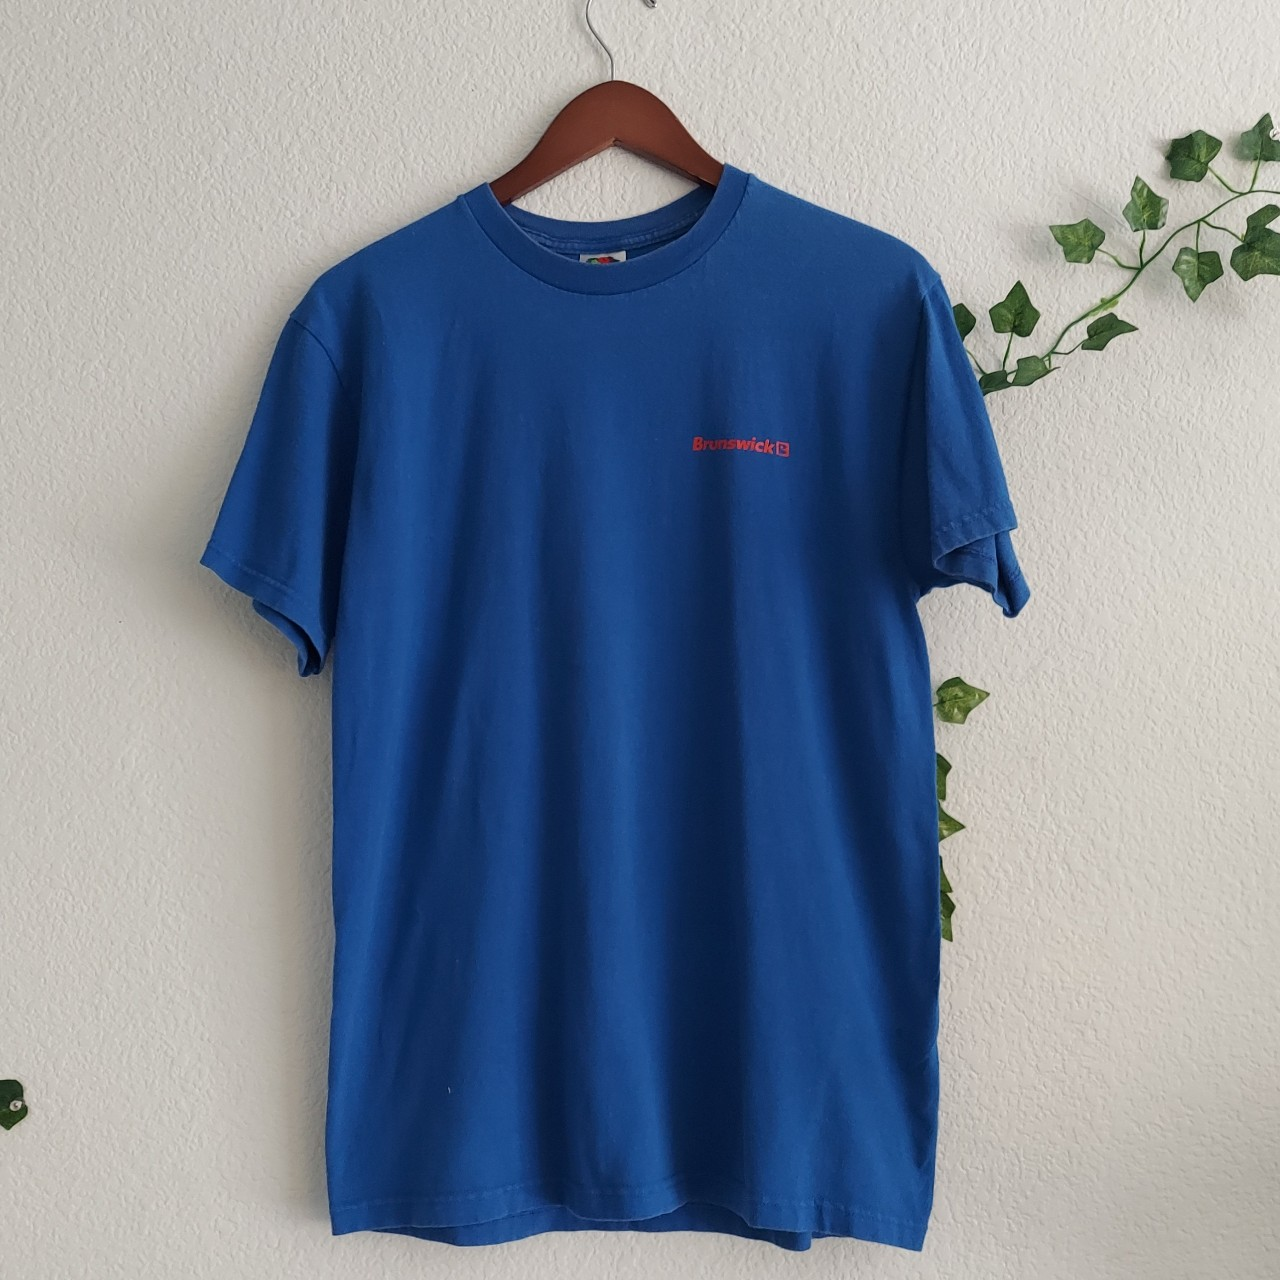 Product Image 1 - °Vintage Brunswick Bowling shirt  CONDITION: This